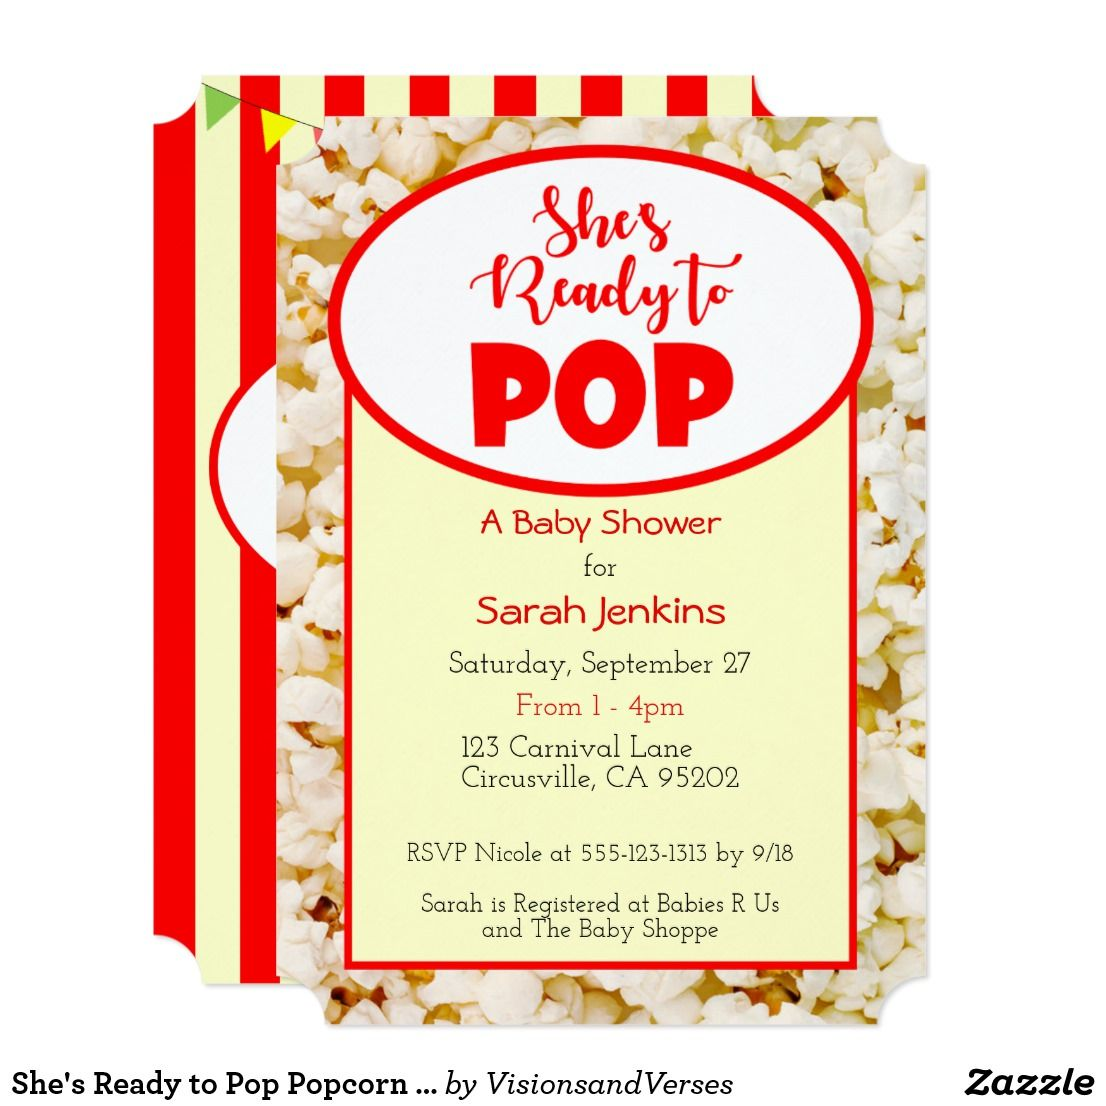 Shes ready to pop popcorn baby shower invitation this cute shes ready to pop popcorn baby shower invitation this cute invitation is perfect for any carnival circus or fair themed baby occasion filmwisefo Images